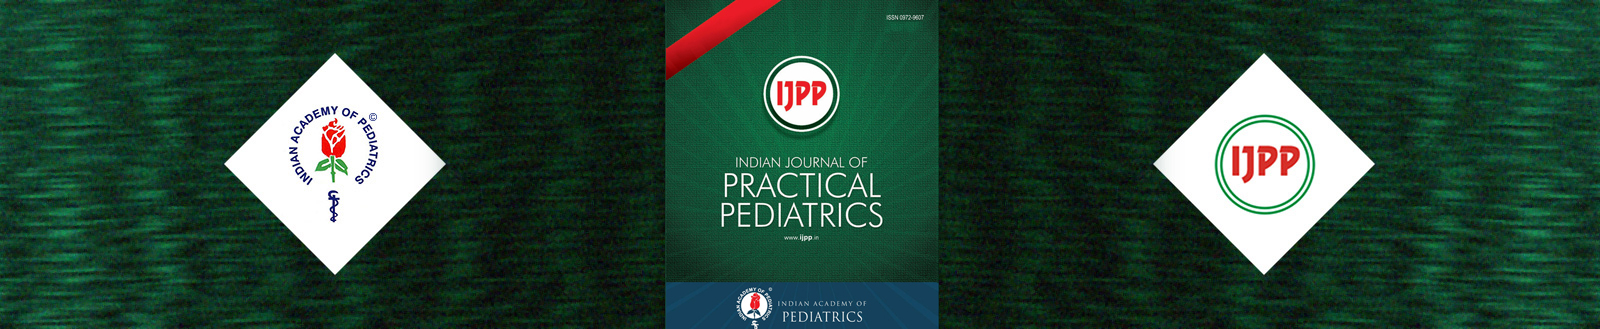 Indian Journal Of Practical Pediatrics